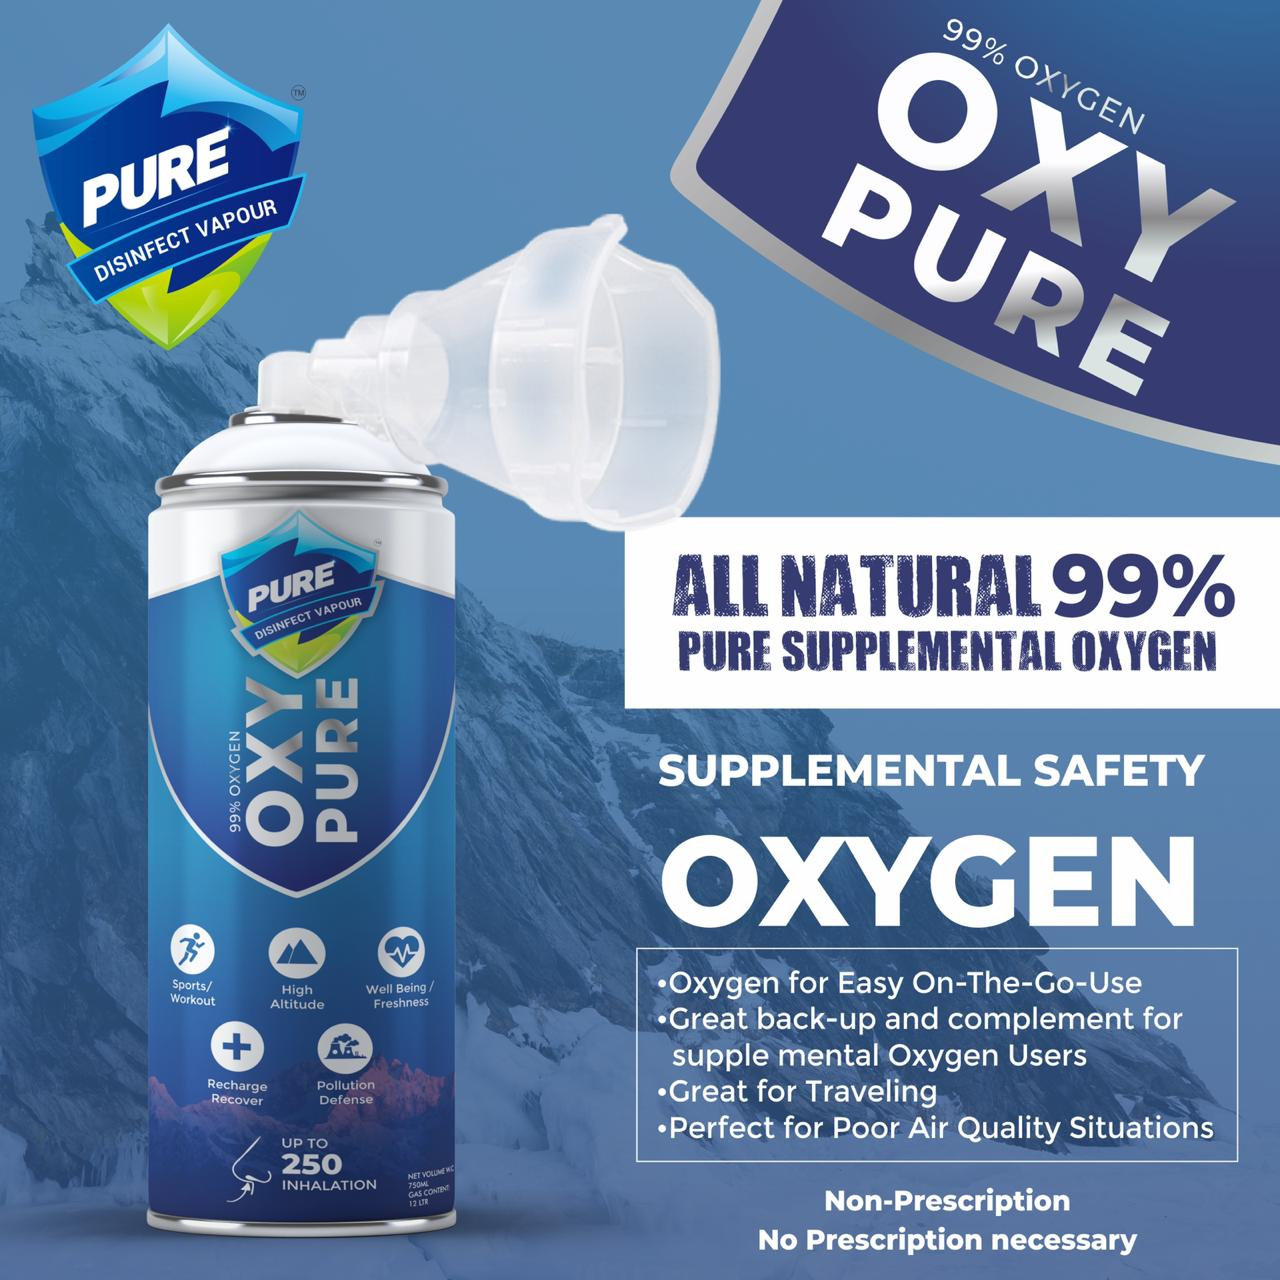 Oxy Pure: Portable oxygen canister by Manhar Vij and Gaurav Chaudhary for high altitudes, professional and amateur athletes and senior citizens.